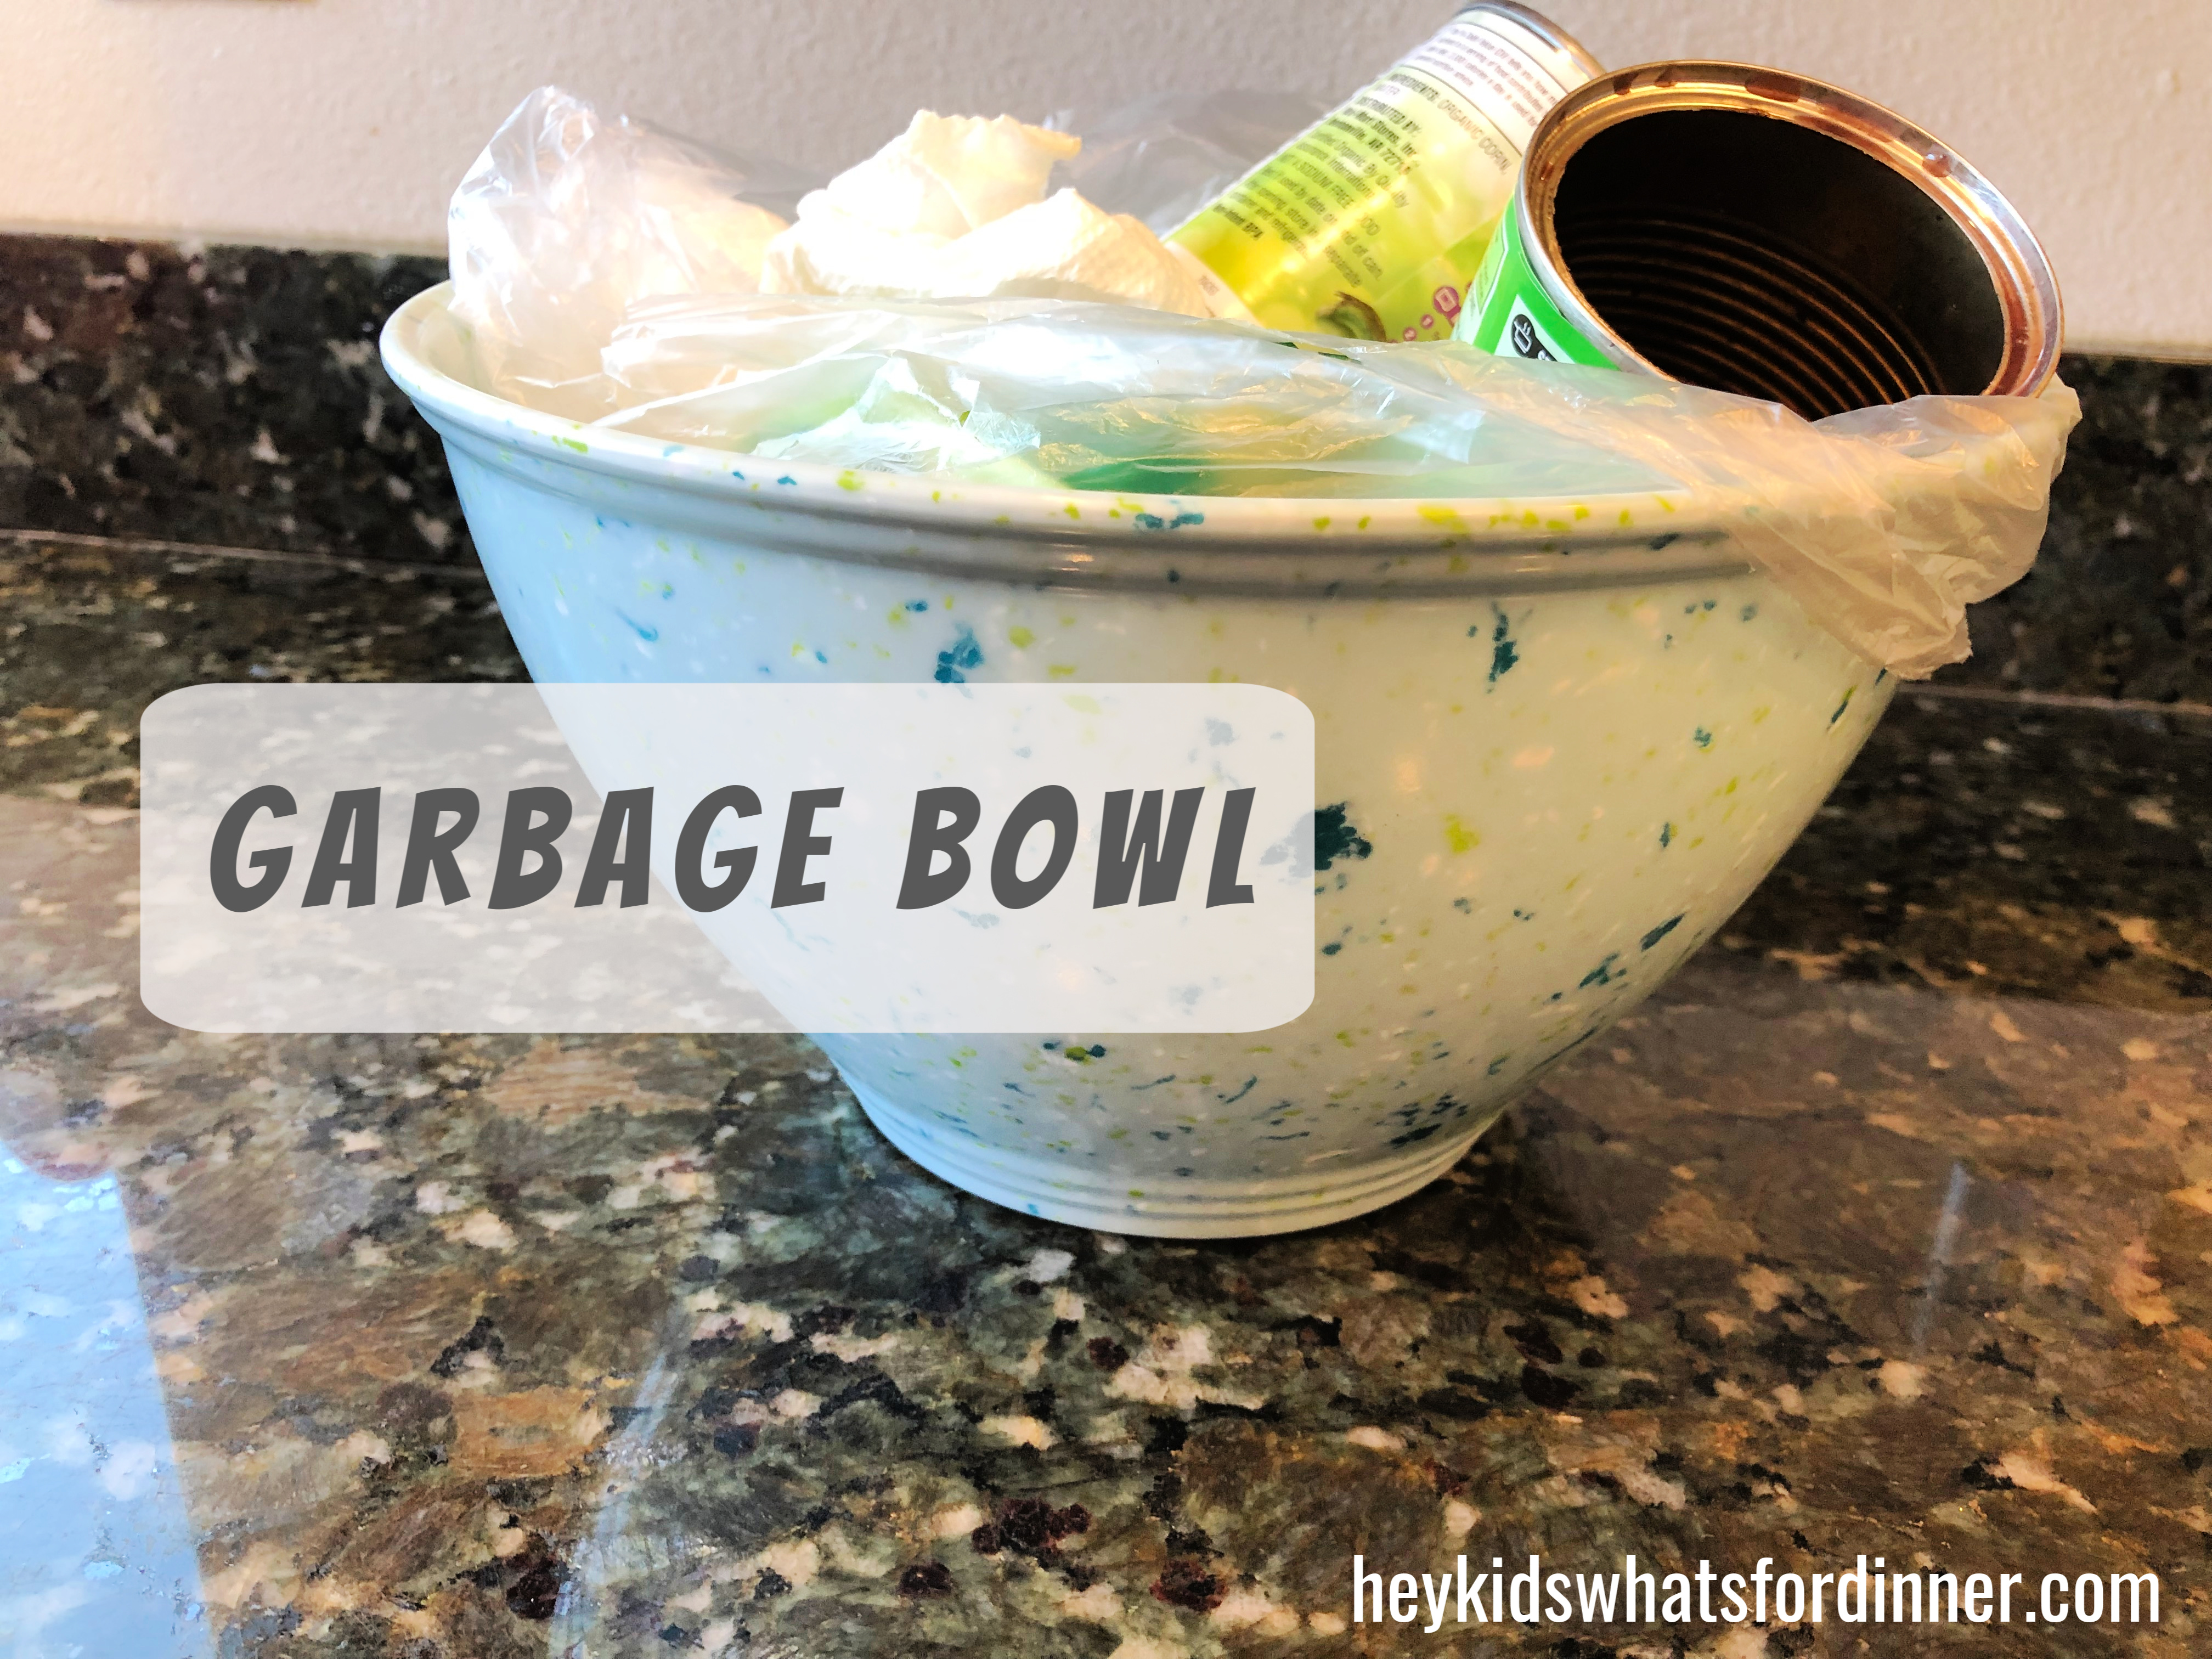 Garbage bowl.jpg